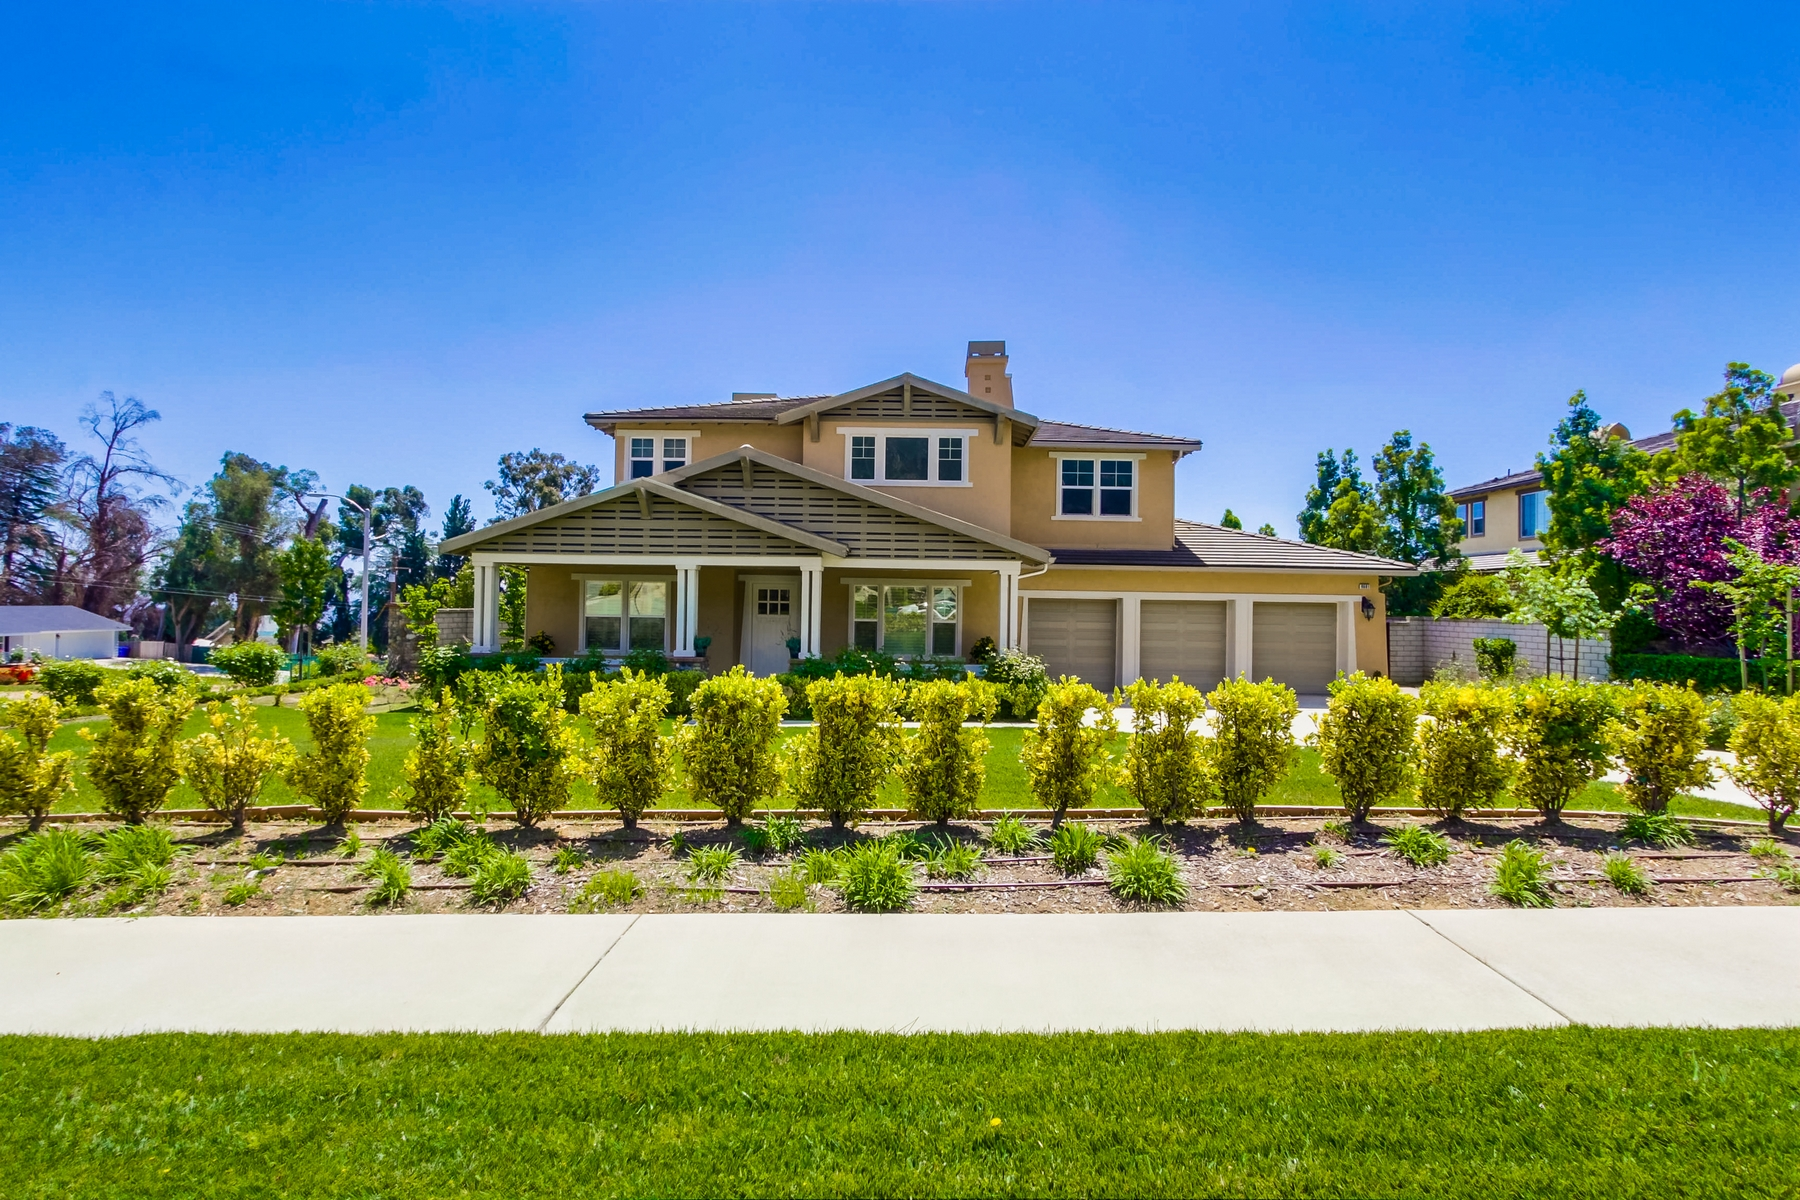 Single Family Home for Sale at 9681 Beldon Court, Rancho Cucamonga Rancho Cucamonga, California 91737 United States